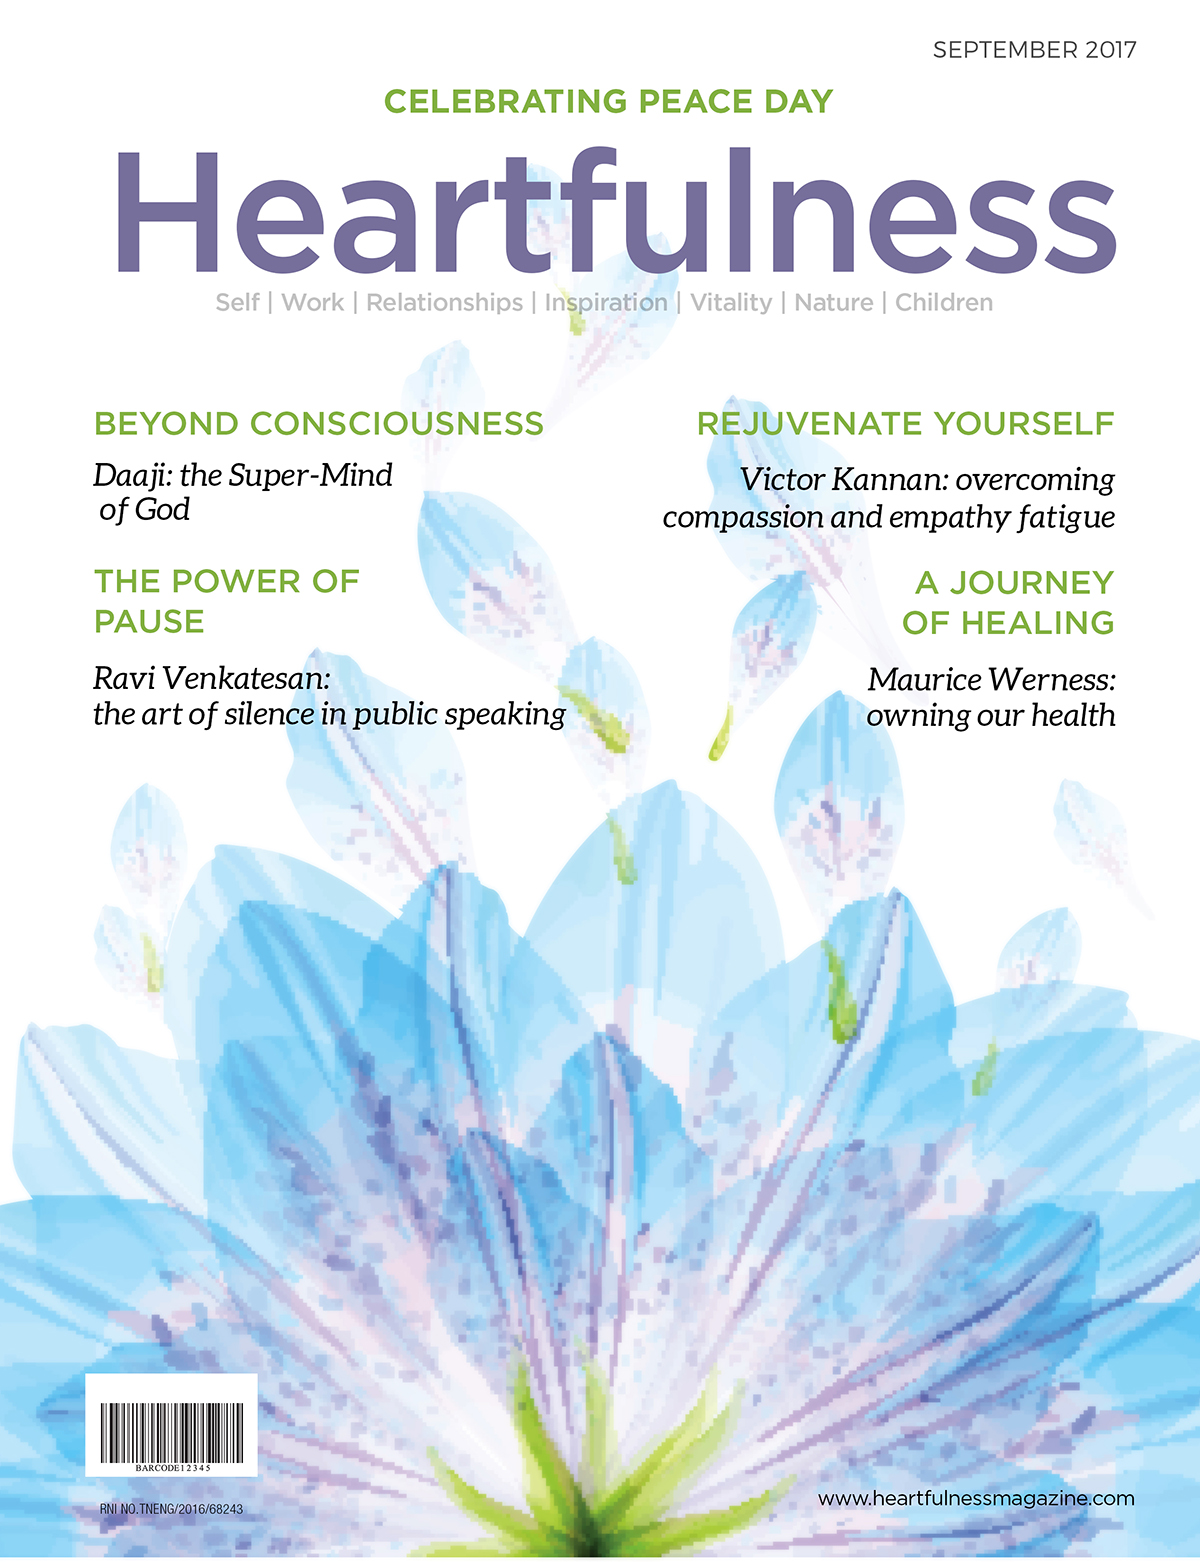 Heartfulness eMagazine - September 2017